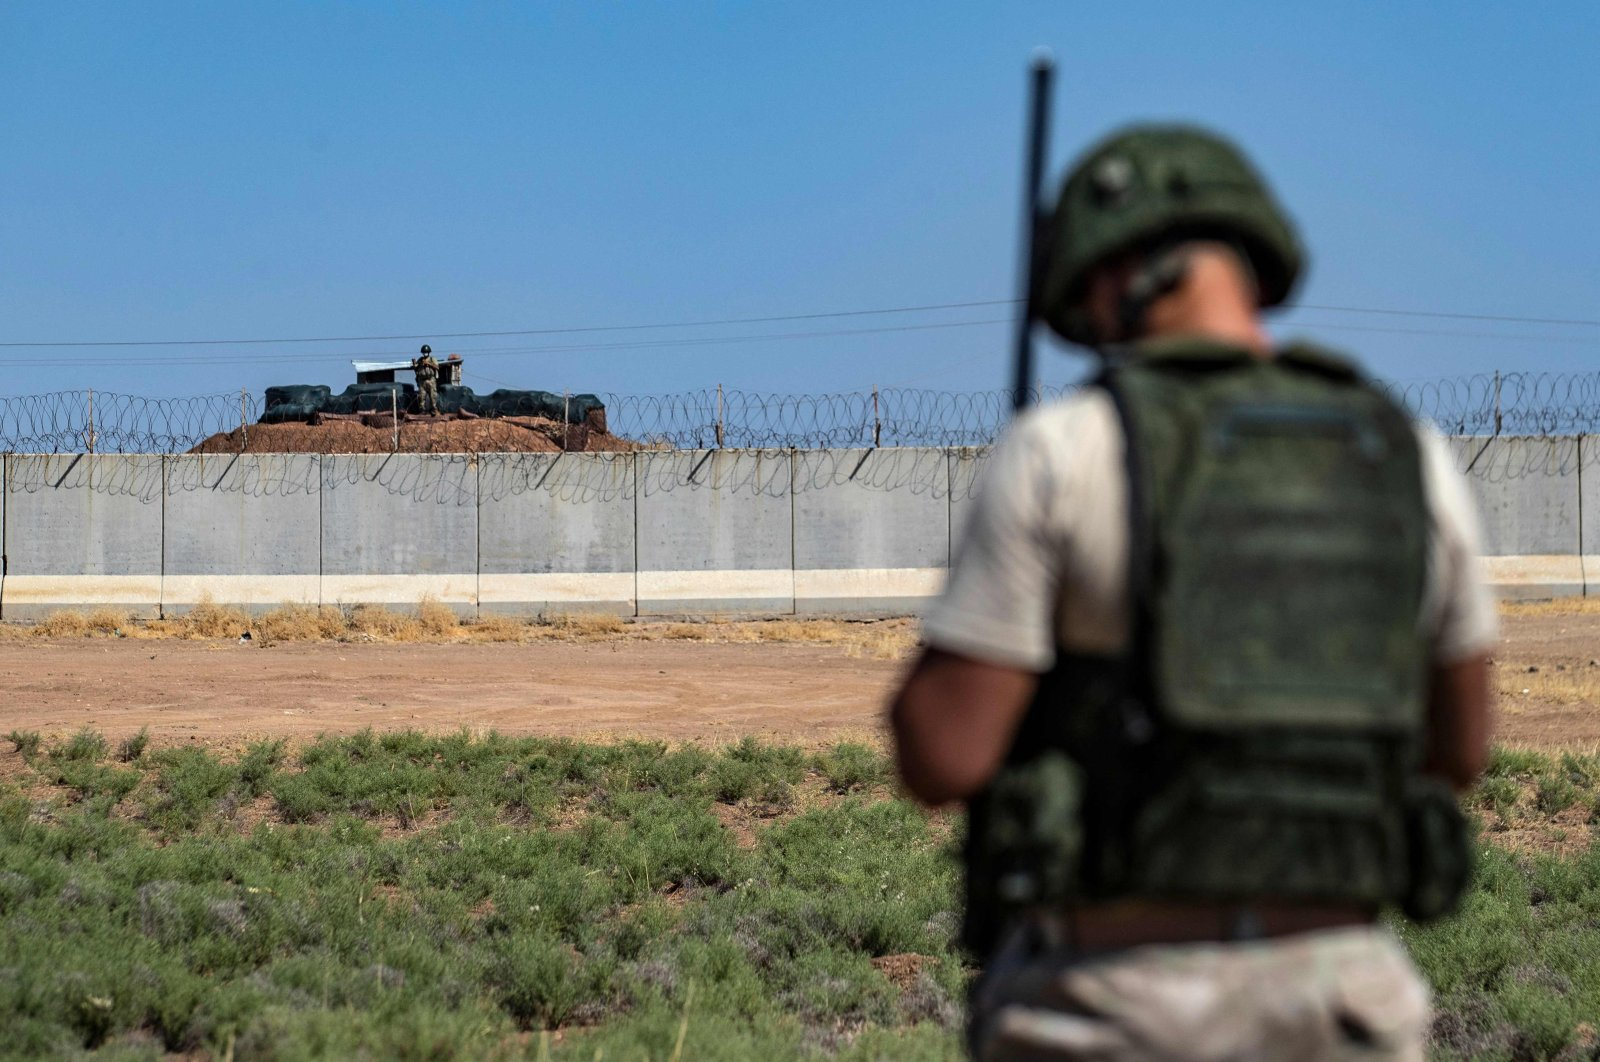 A Russian soldier is pictured as a Turkish soldier stands behind the border with Syria, during a joint Turkish and Russian patrol of military vehicles (unseen) in the countryside of the town of Derbassiye in Syria's northeastern Hasakeh province, on the border with Turkey, July 14, 2021. (AFP Photo)